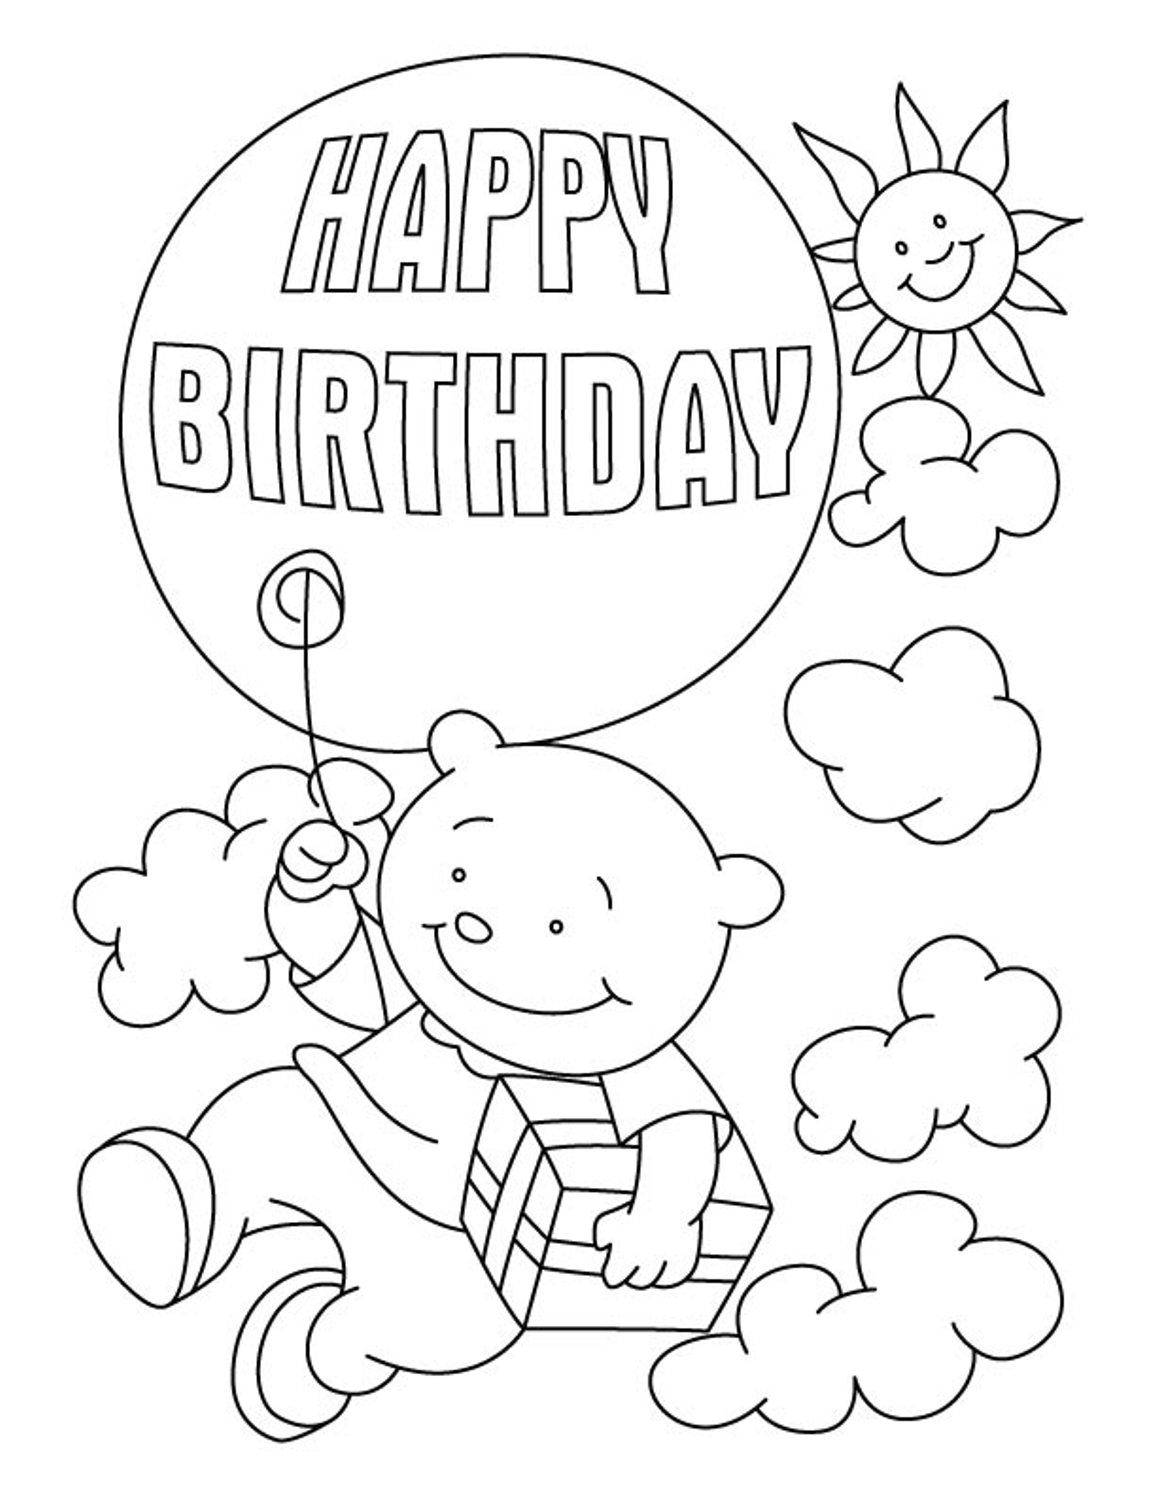 coloring printable birthday cards free happy birthday sister coloring pages at getcoloringscom birthday cards free printable coloring